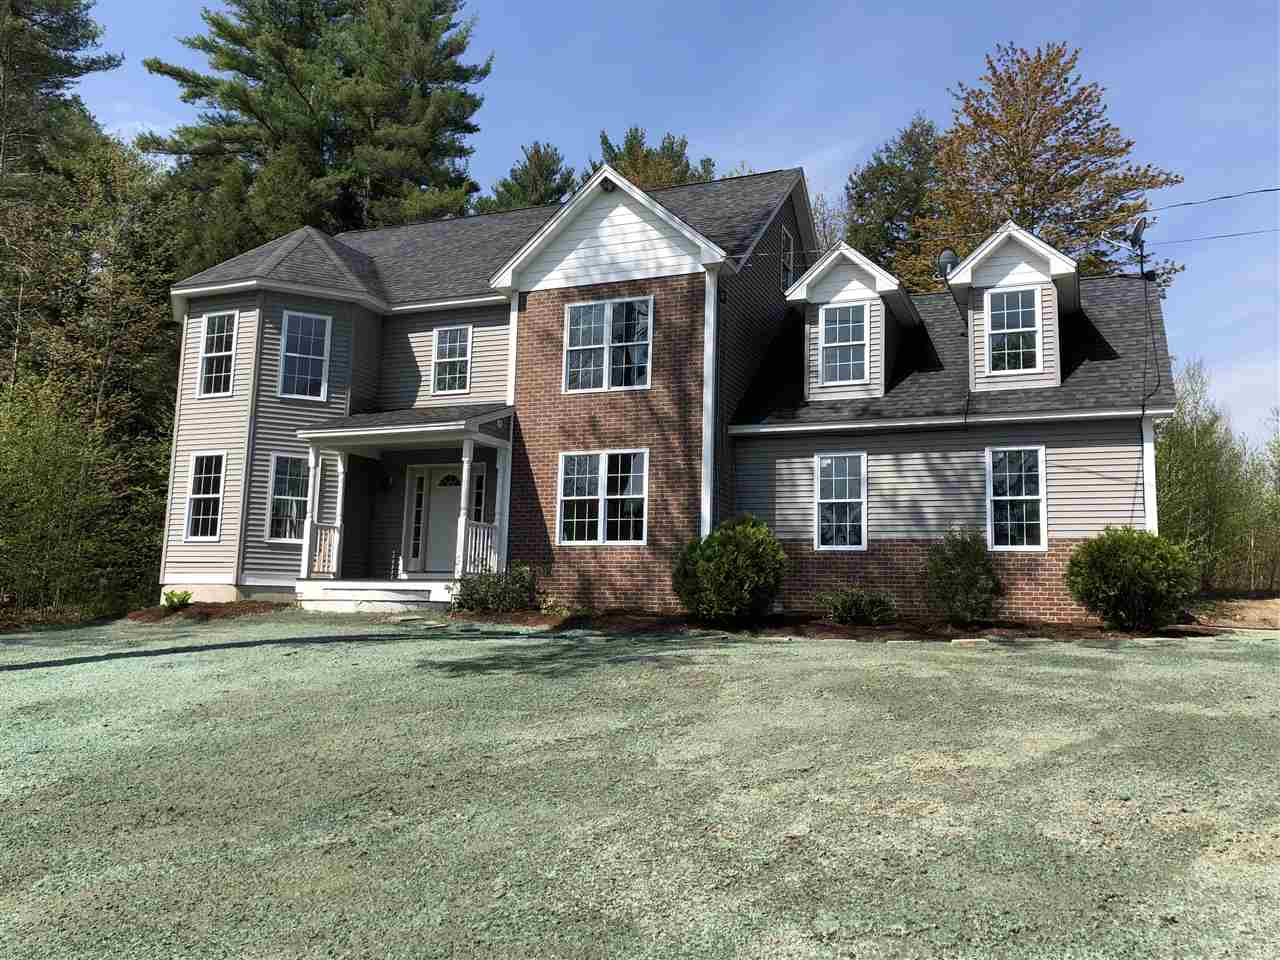 Homes in Jaffrey